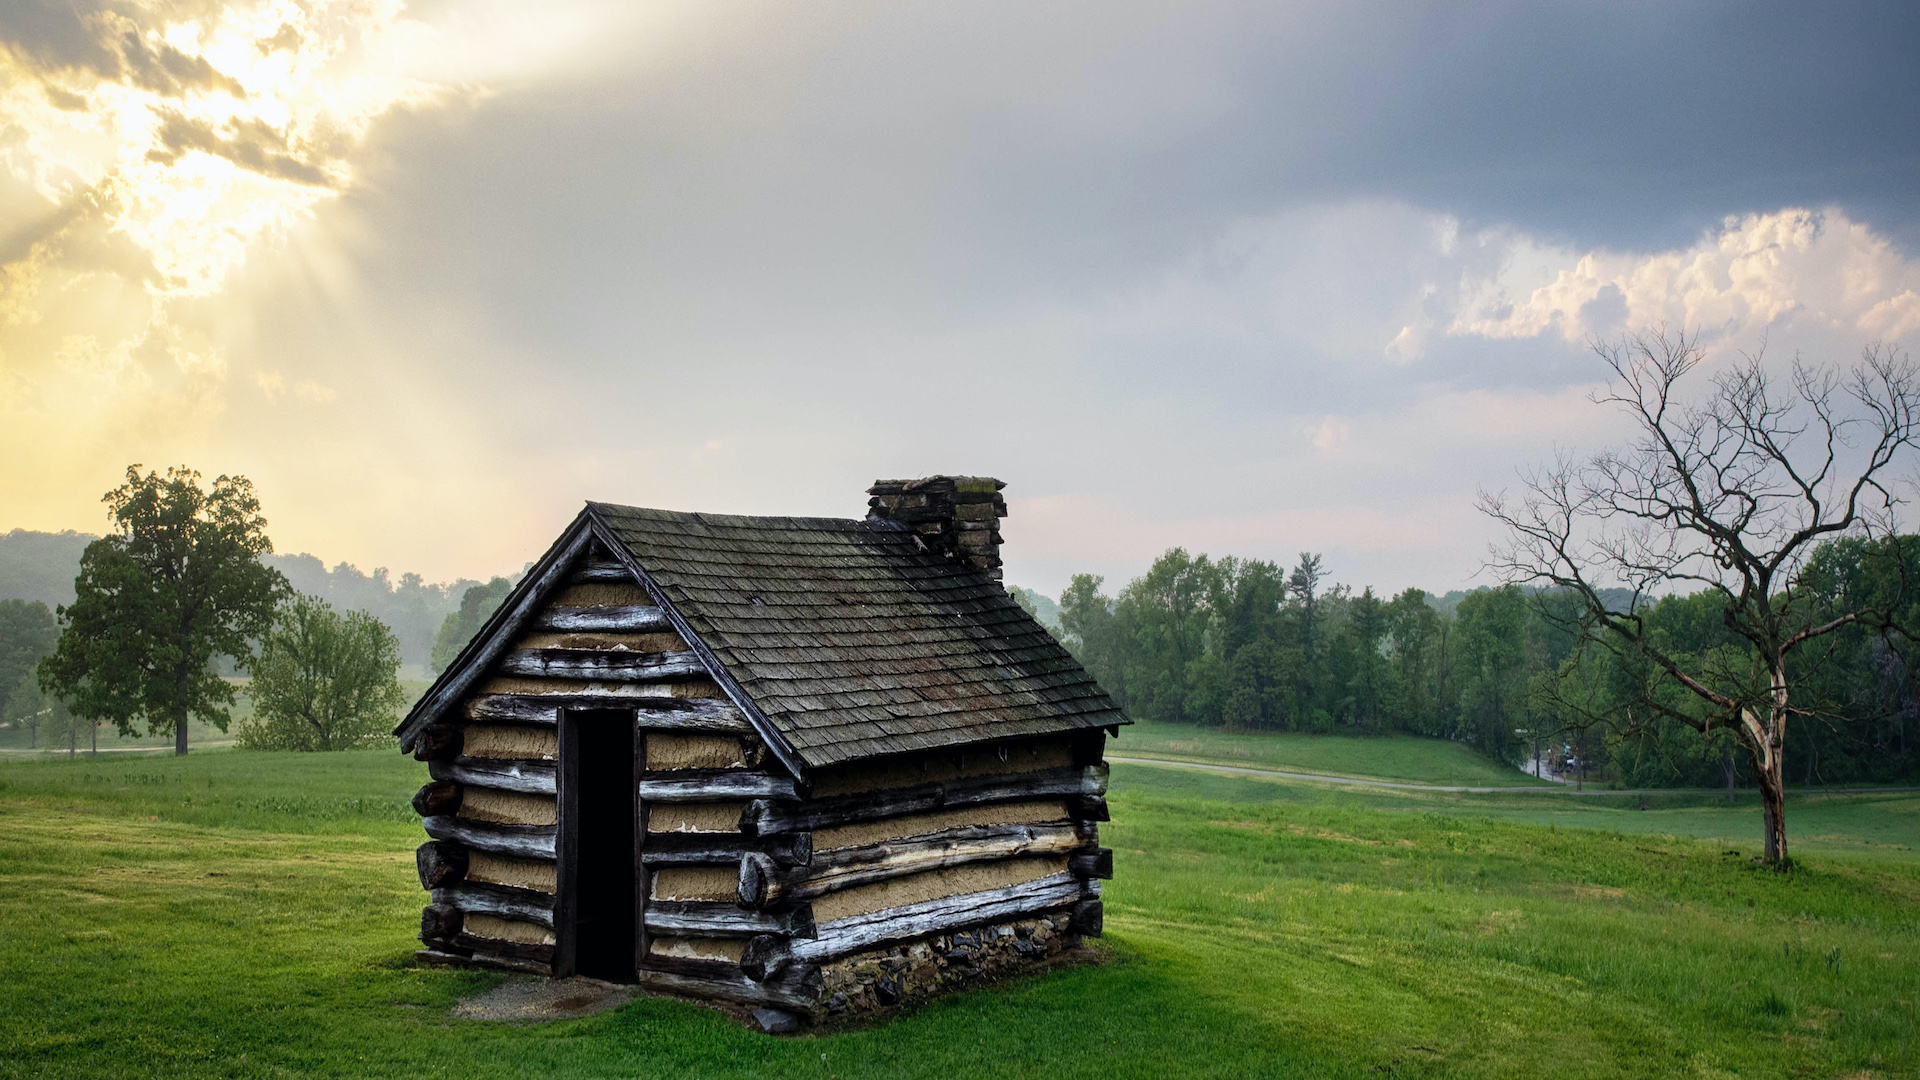 Image courtesy of Valley Forge National Park